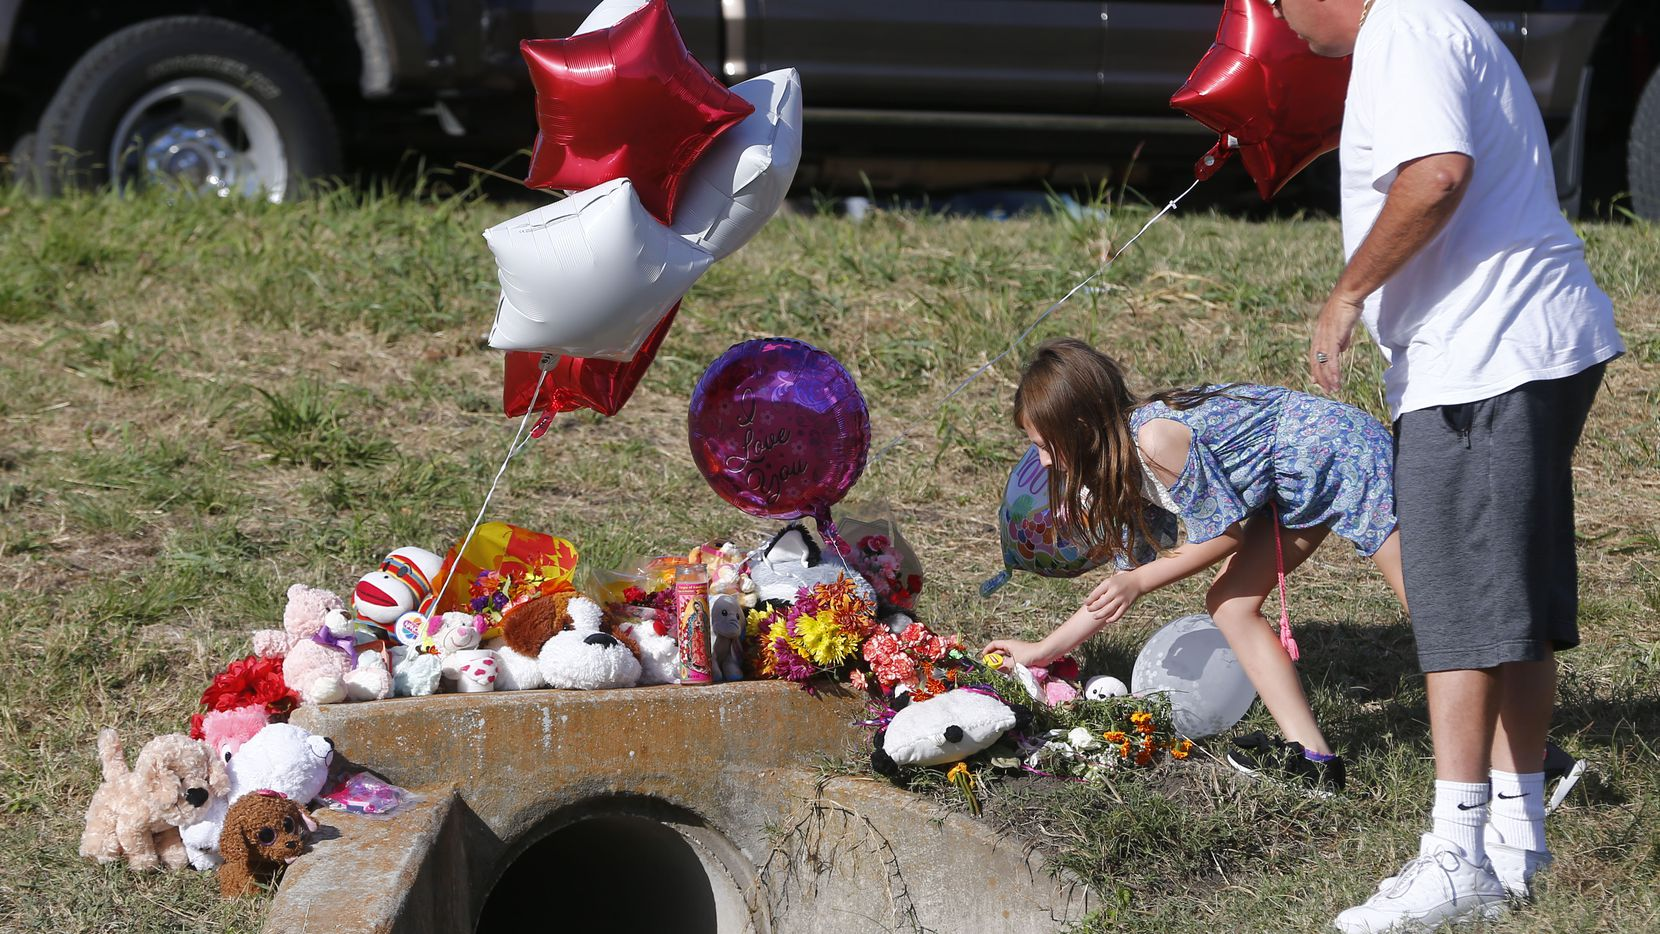 Miley Grahmann, 8, with her father Patrick Grahmann, leaves a bear with a jar of Carmex (in case her lips get chapped in heaven) in the area where the body of Sherin Mathews was found.